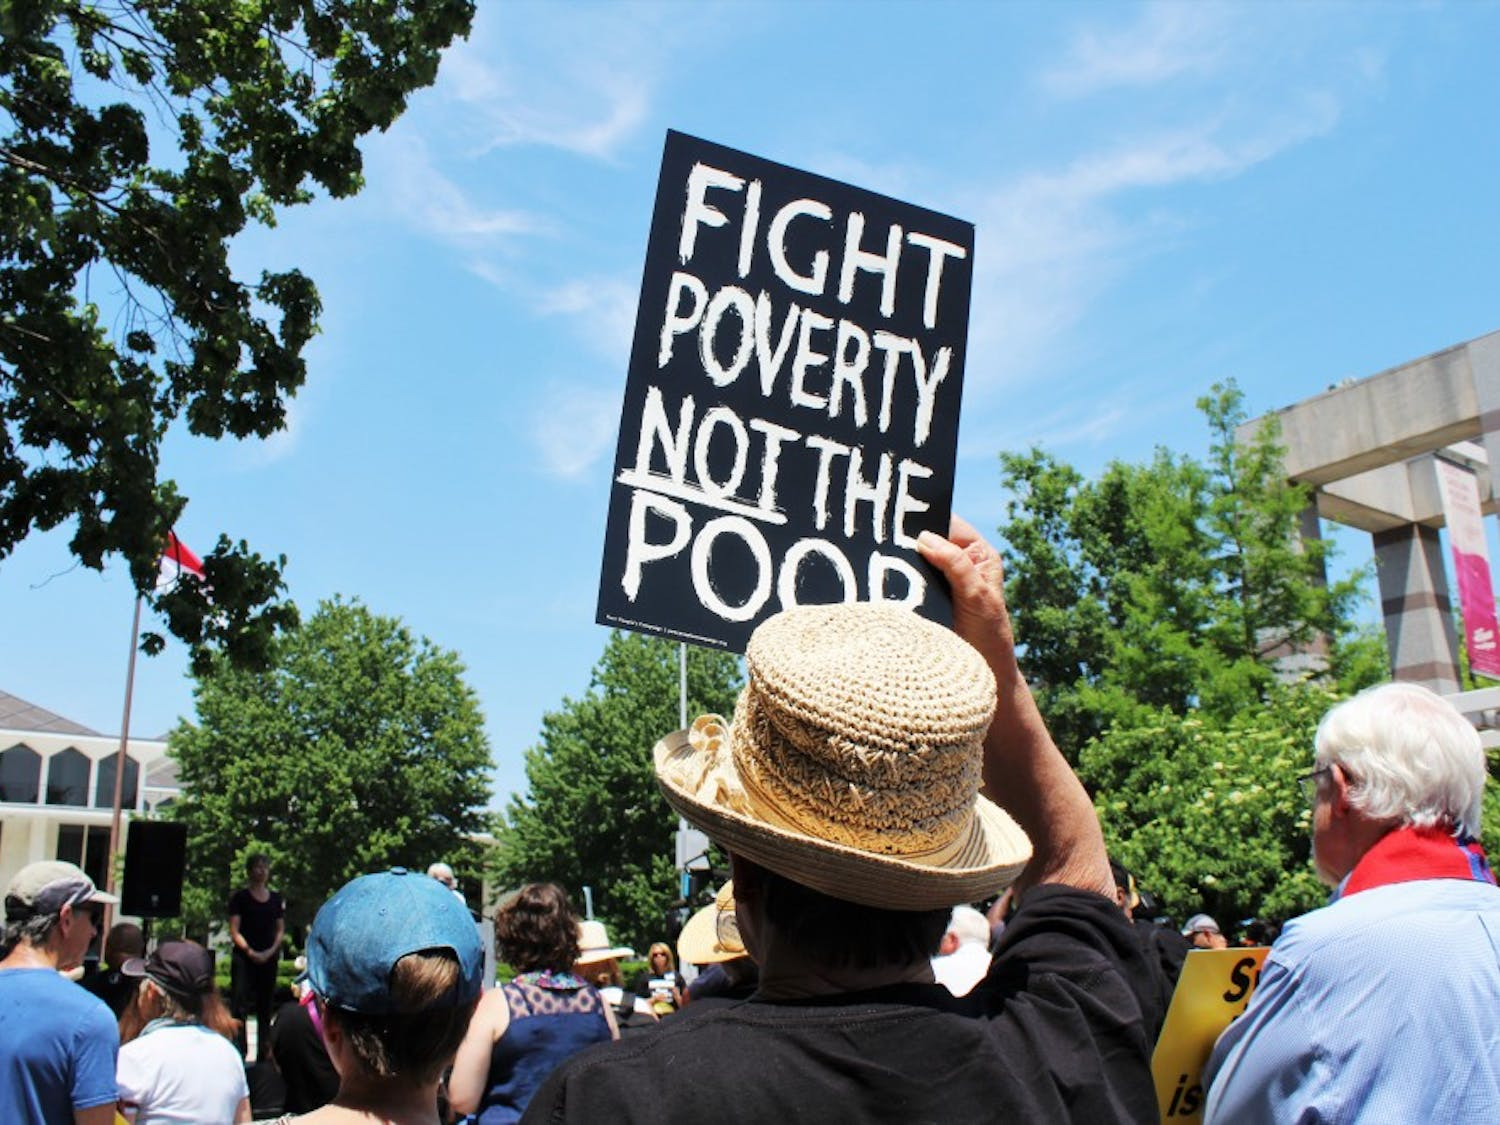 North Carolina Poor People's Campaign staged a protest in downtown Raleigh on May 14.